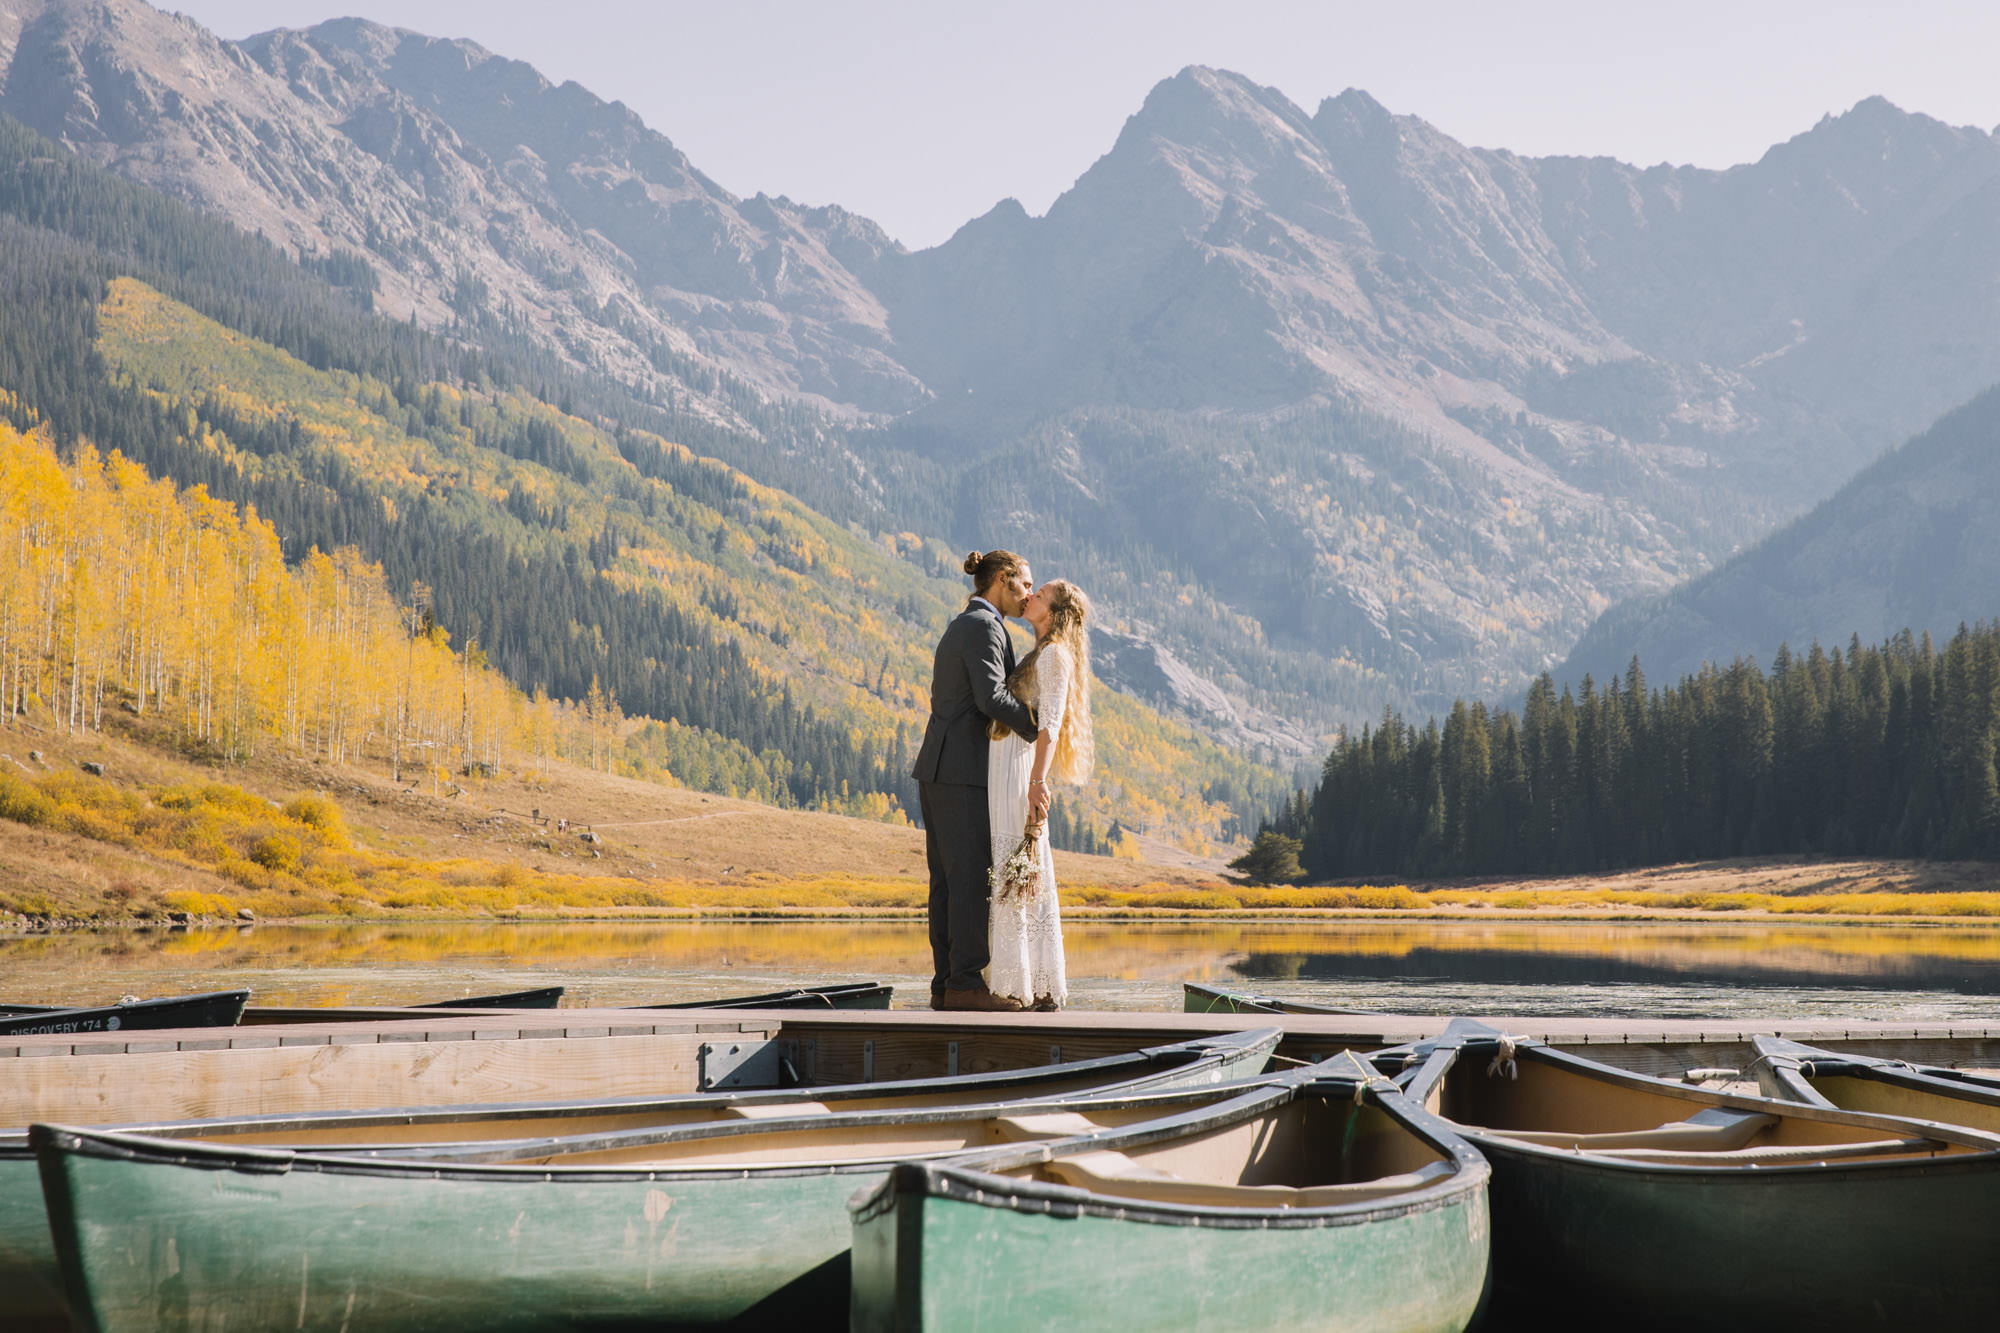 Bride and groom kissing in Colorado mountains